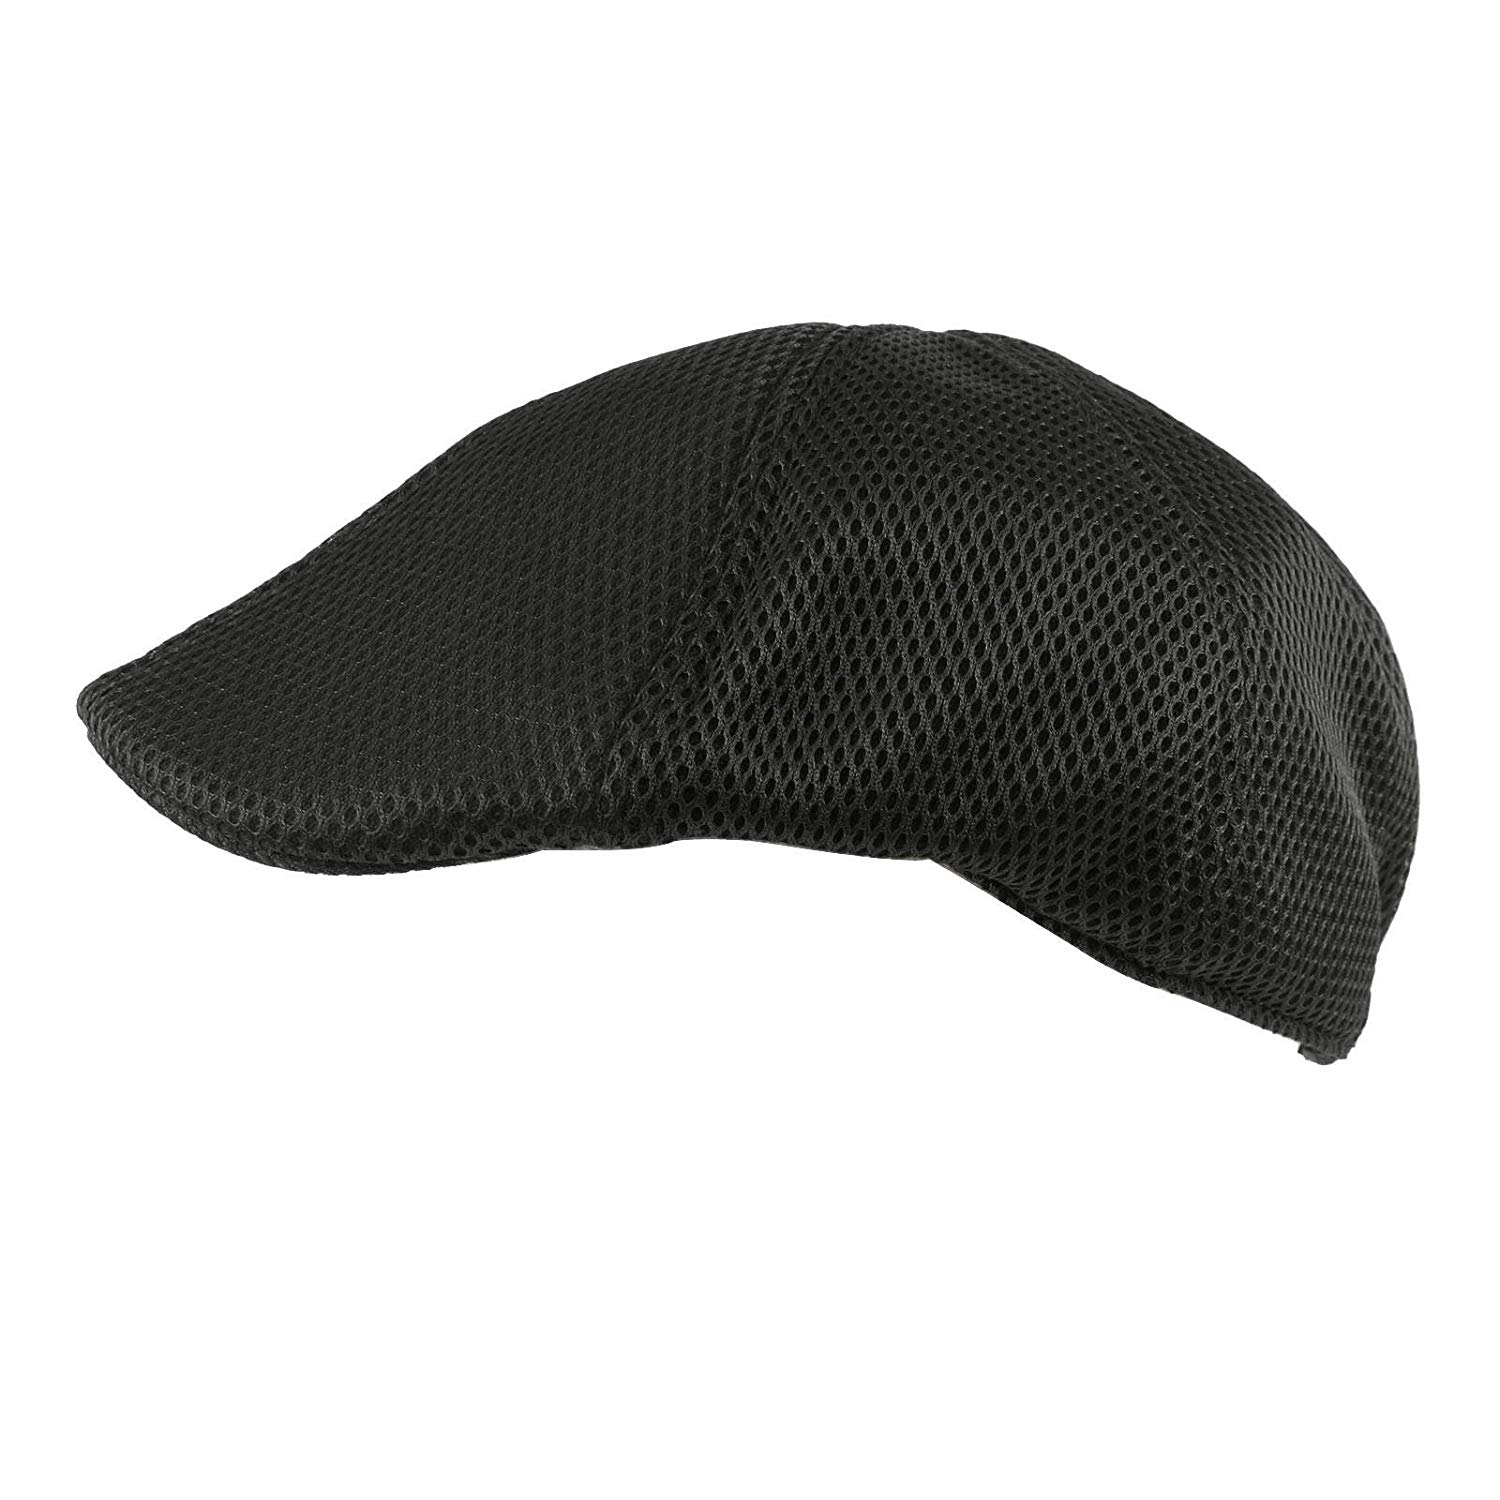 efc292d812e Get Quotations · SK Hat shop Mens Summer Mesh Camo duckbill Flat Golf IVY  Driver Cabbie Sun Cap Hat